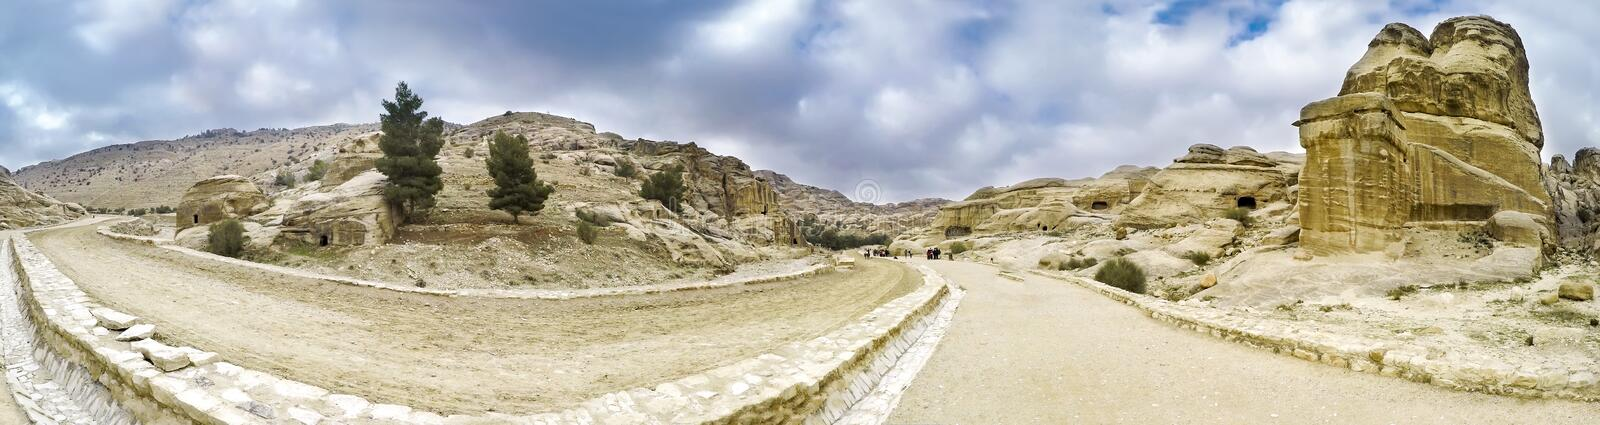 Panoramic view of canyon in Petra royalty free stock photo